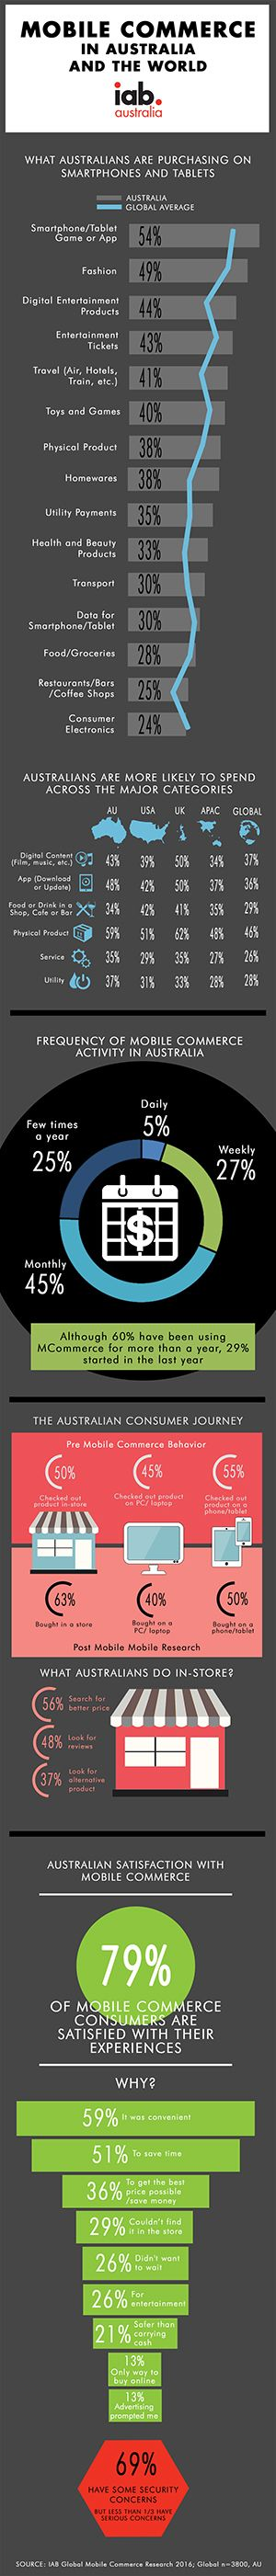 MCOMM Infographic OCT 2016 SMALL